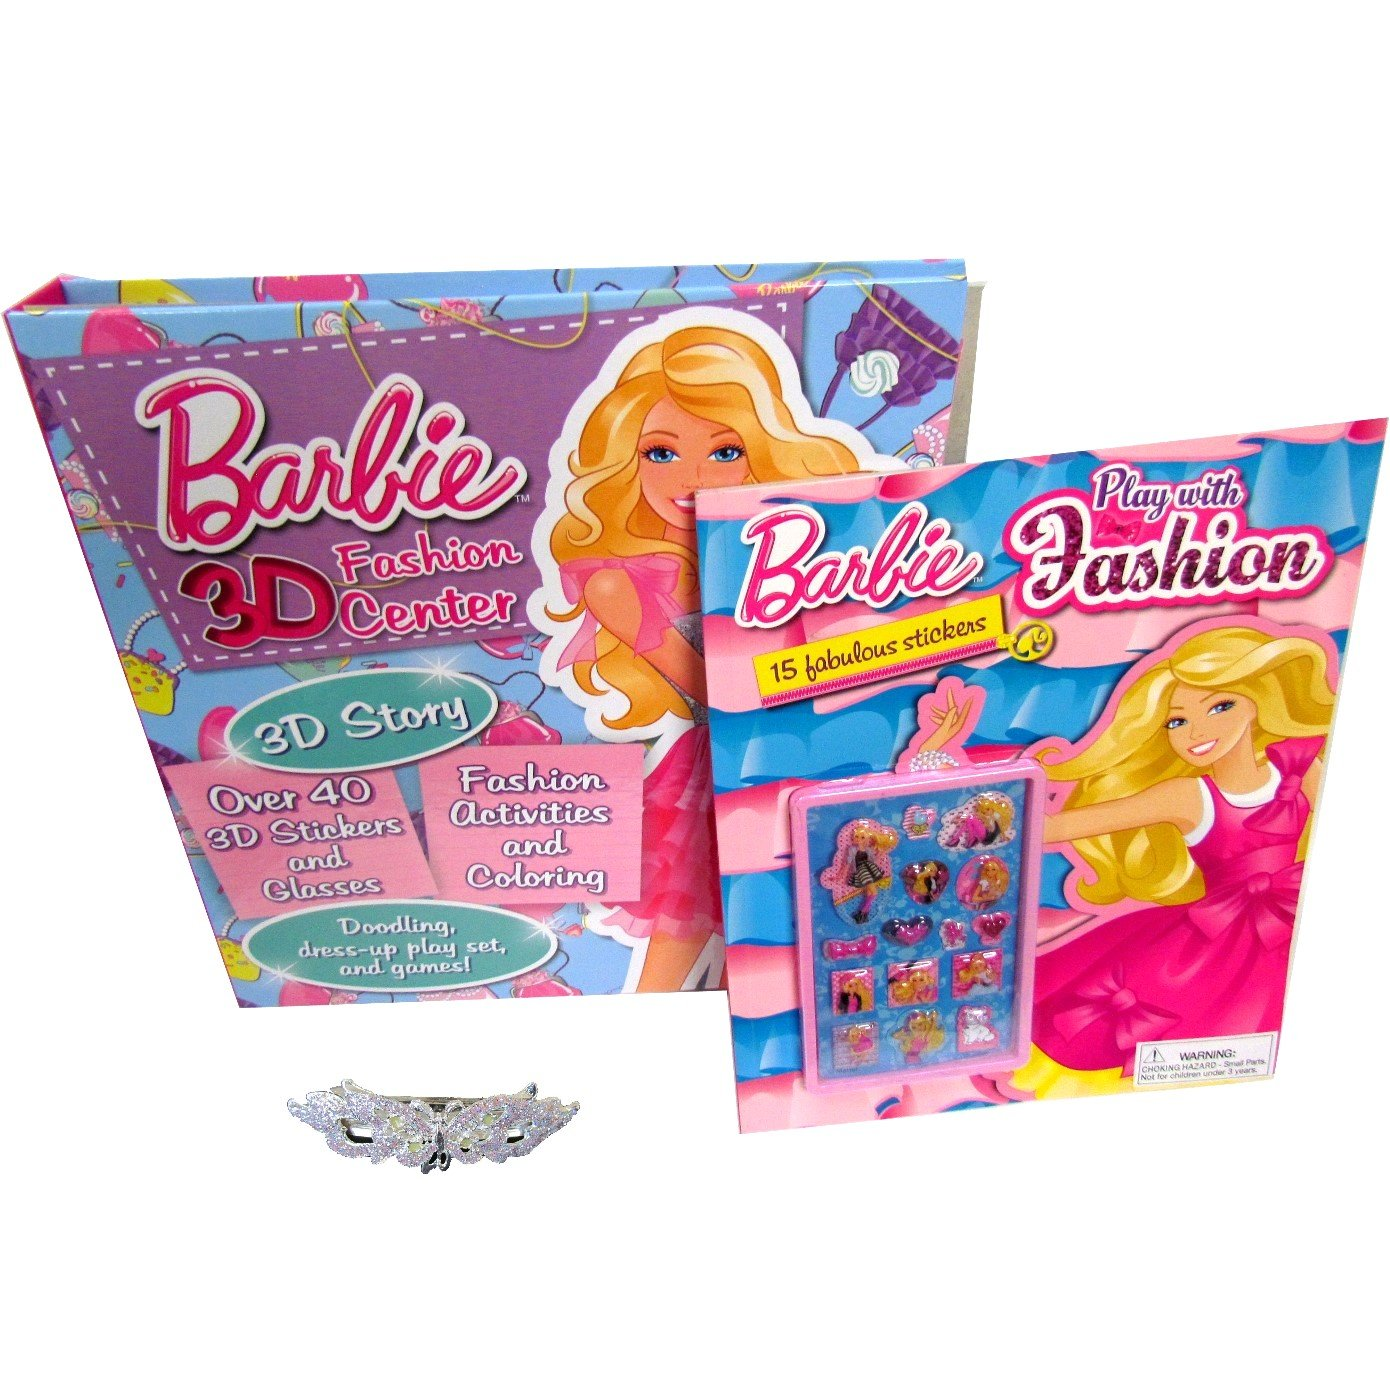 Amazon 2 Barbie Books For Kids Coloring Book And Activity Girls A 3 Barrette Stocking Stuffers Christmas Gifts